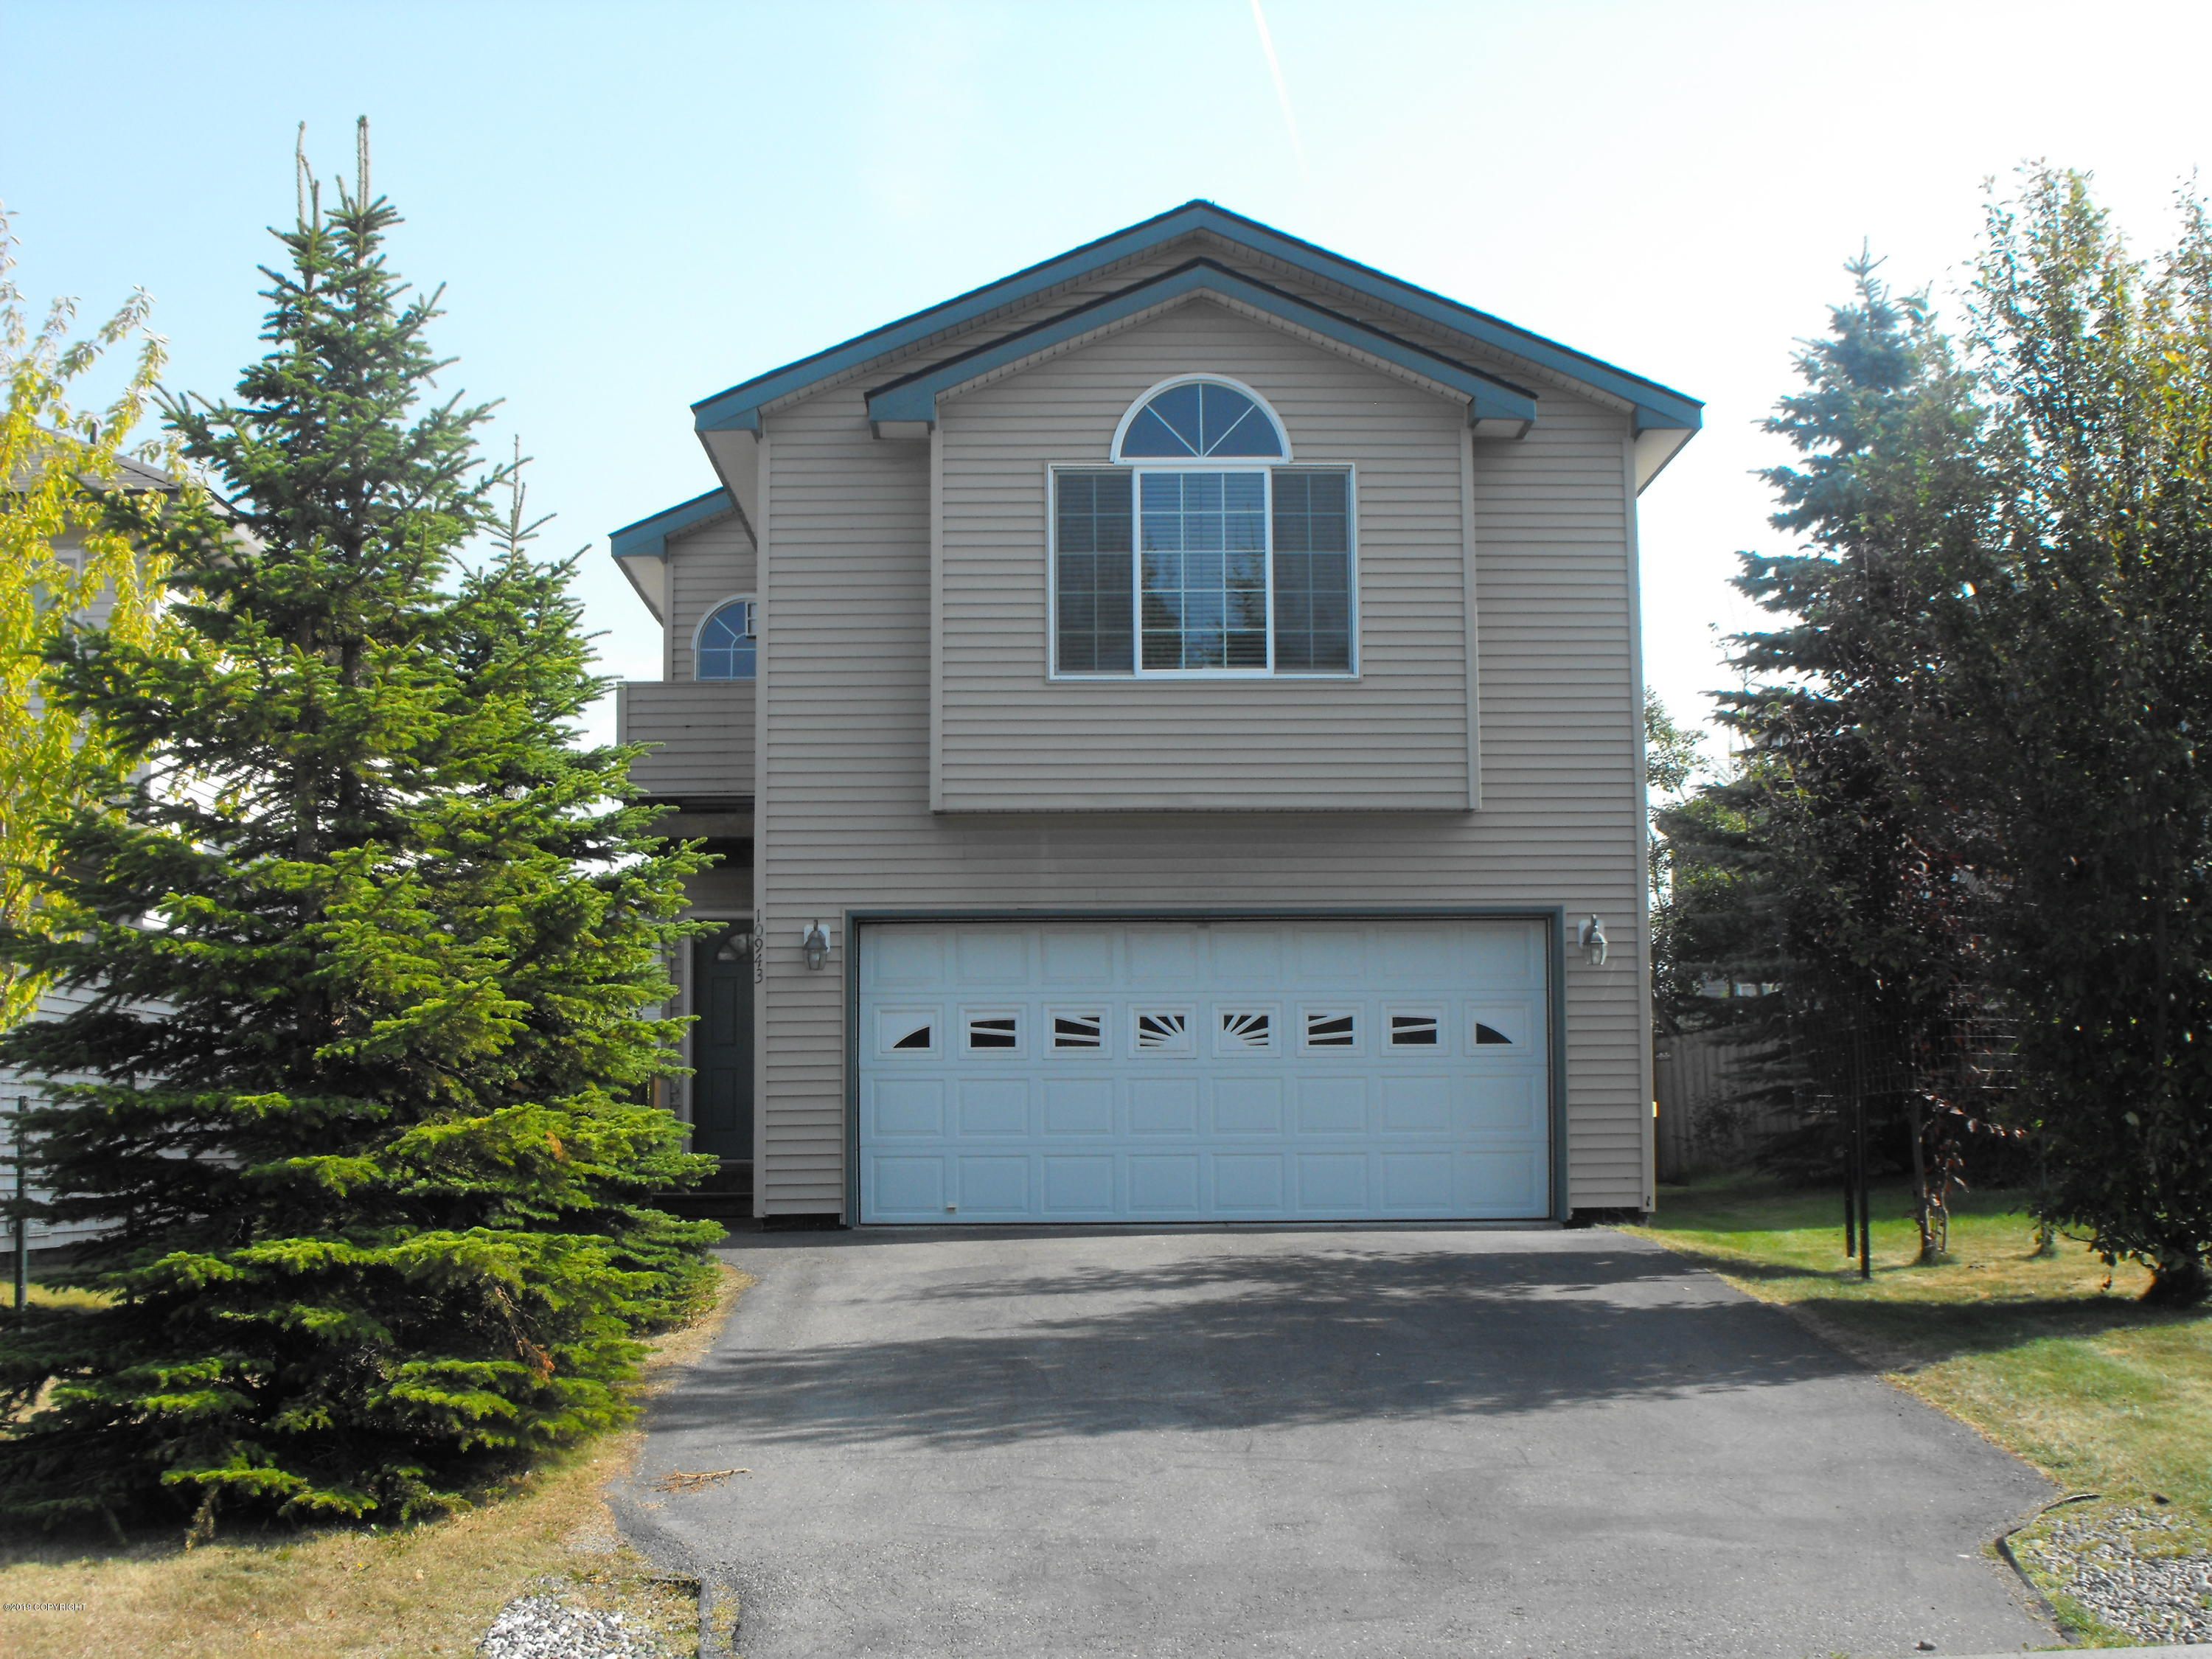 10943 Retreat Circle Anchorage Home Listings - Soquet Realty, Inc. Anchorage Real Estate